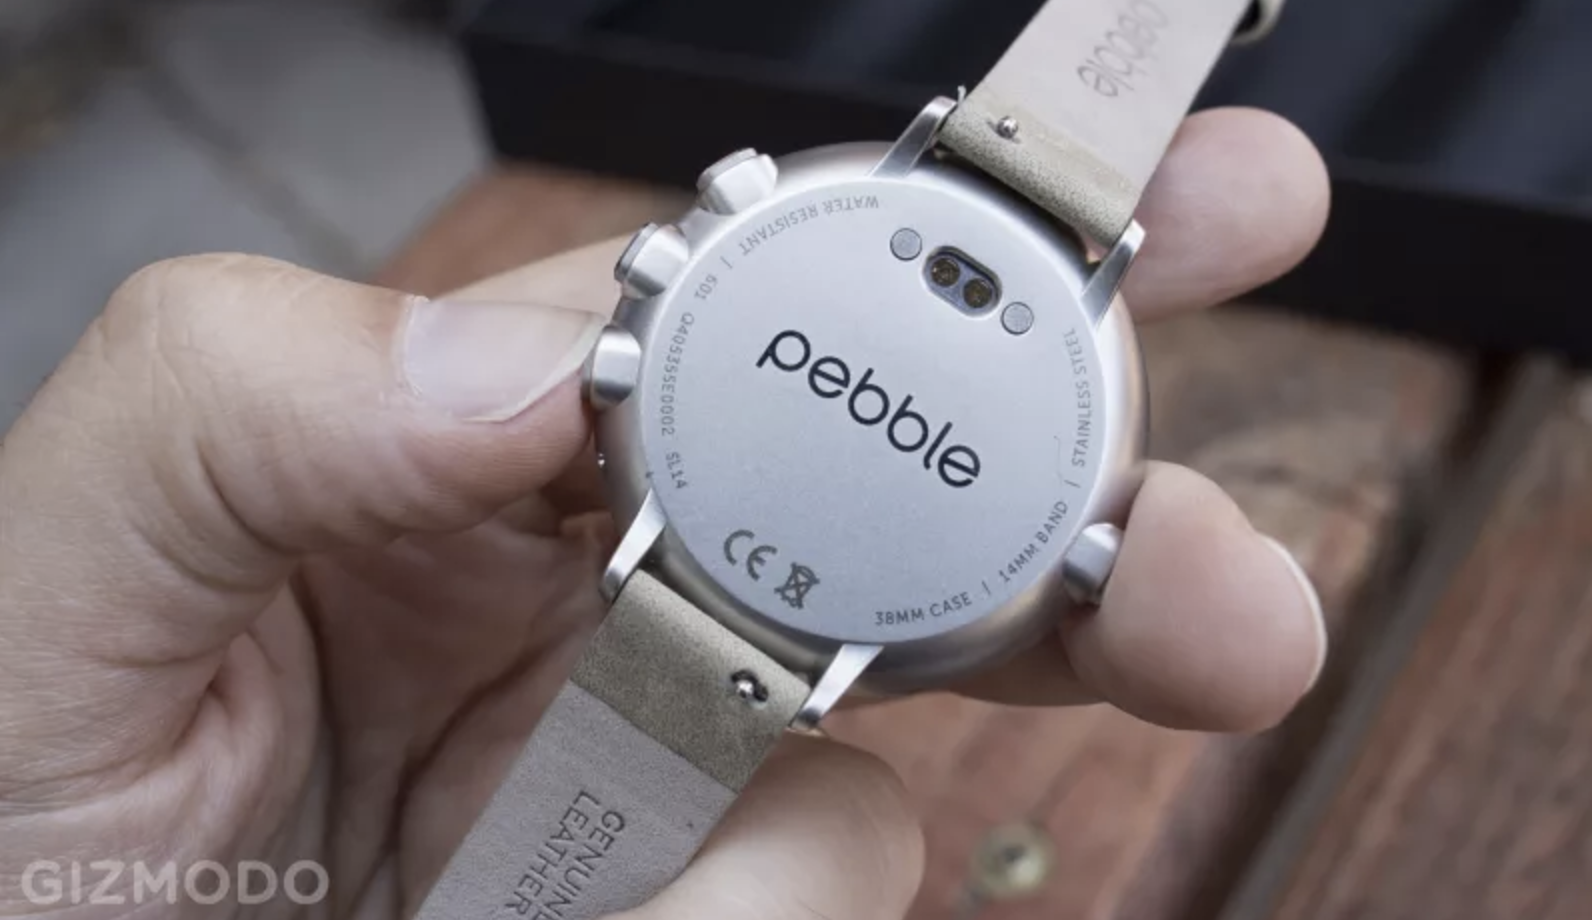 Pebble Is Dead, And Its Customers Are Completely Screwed